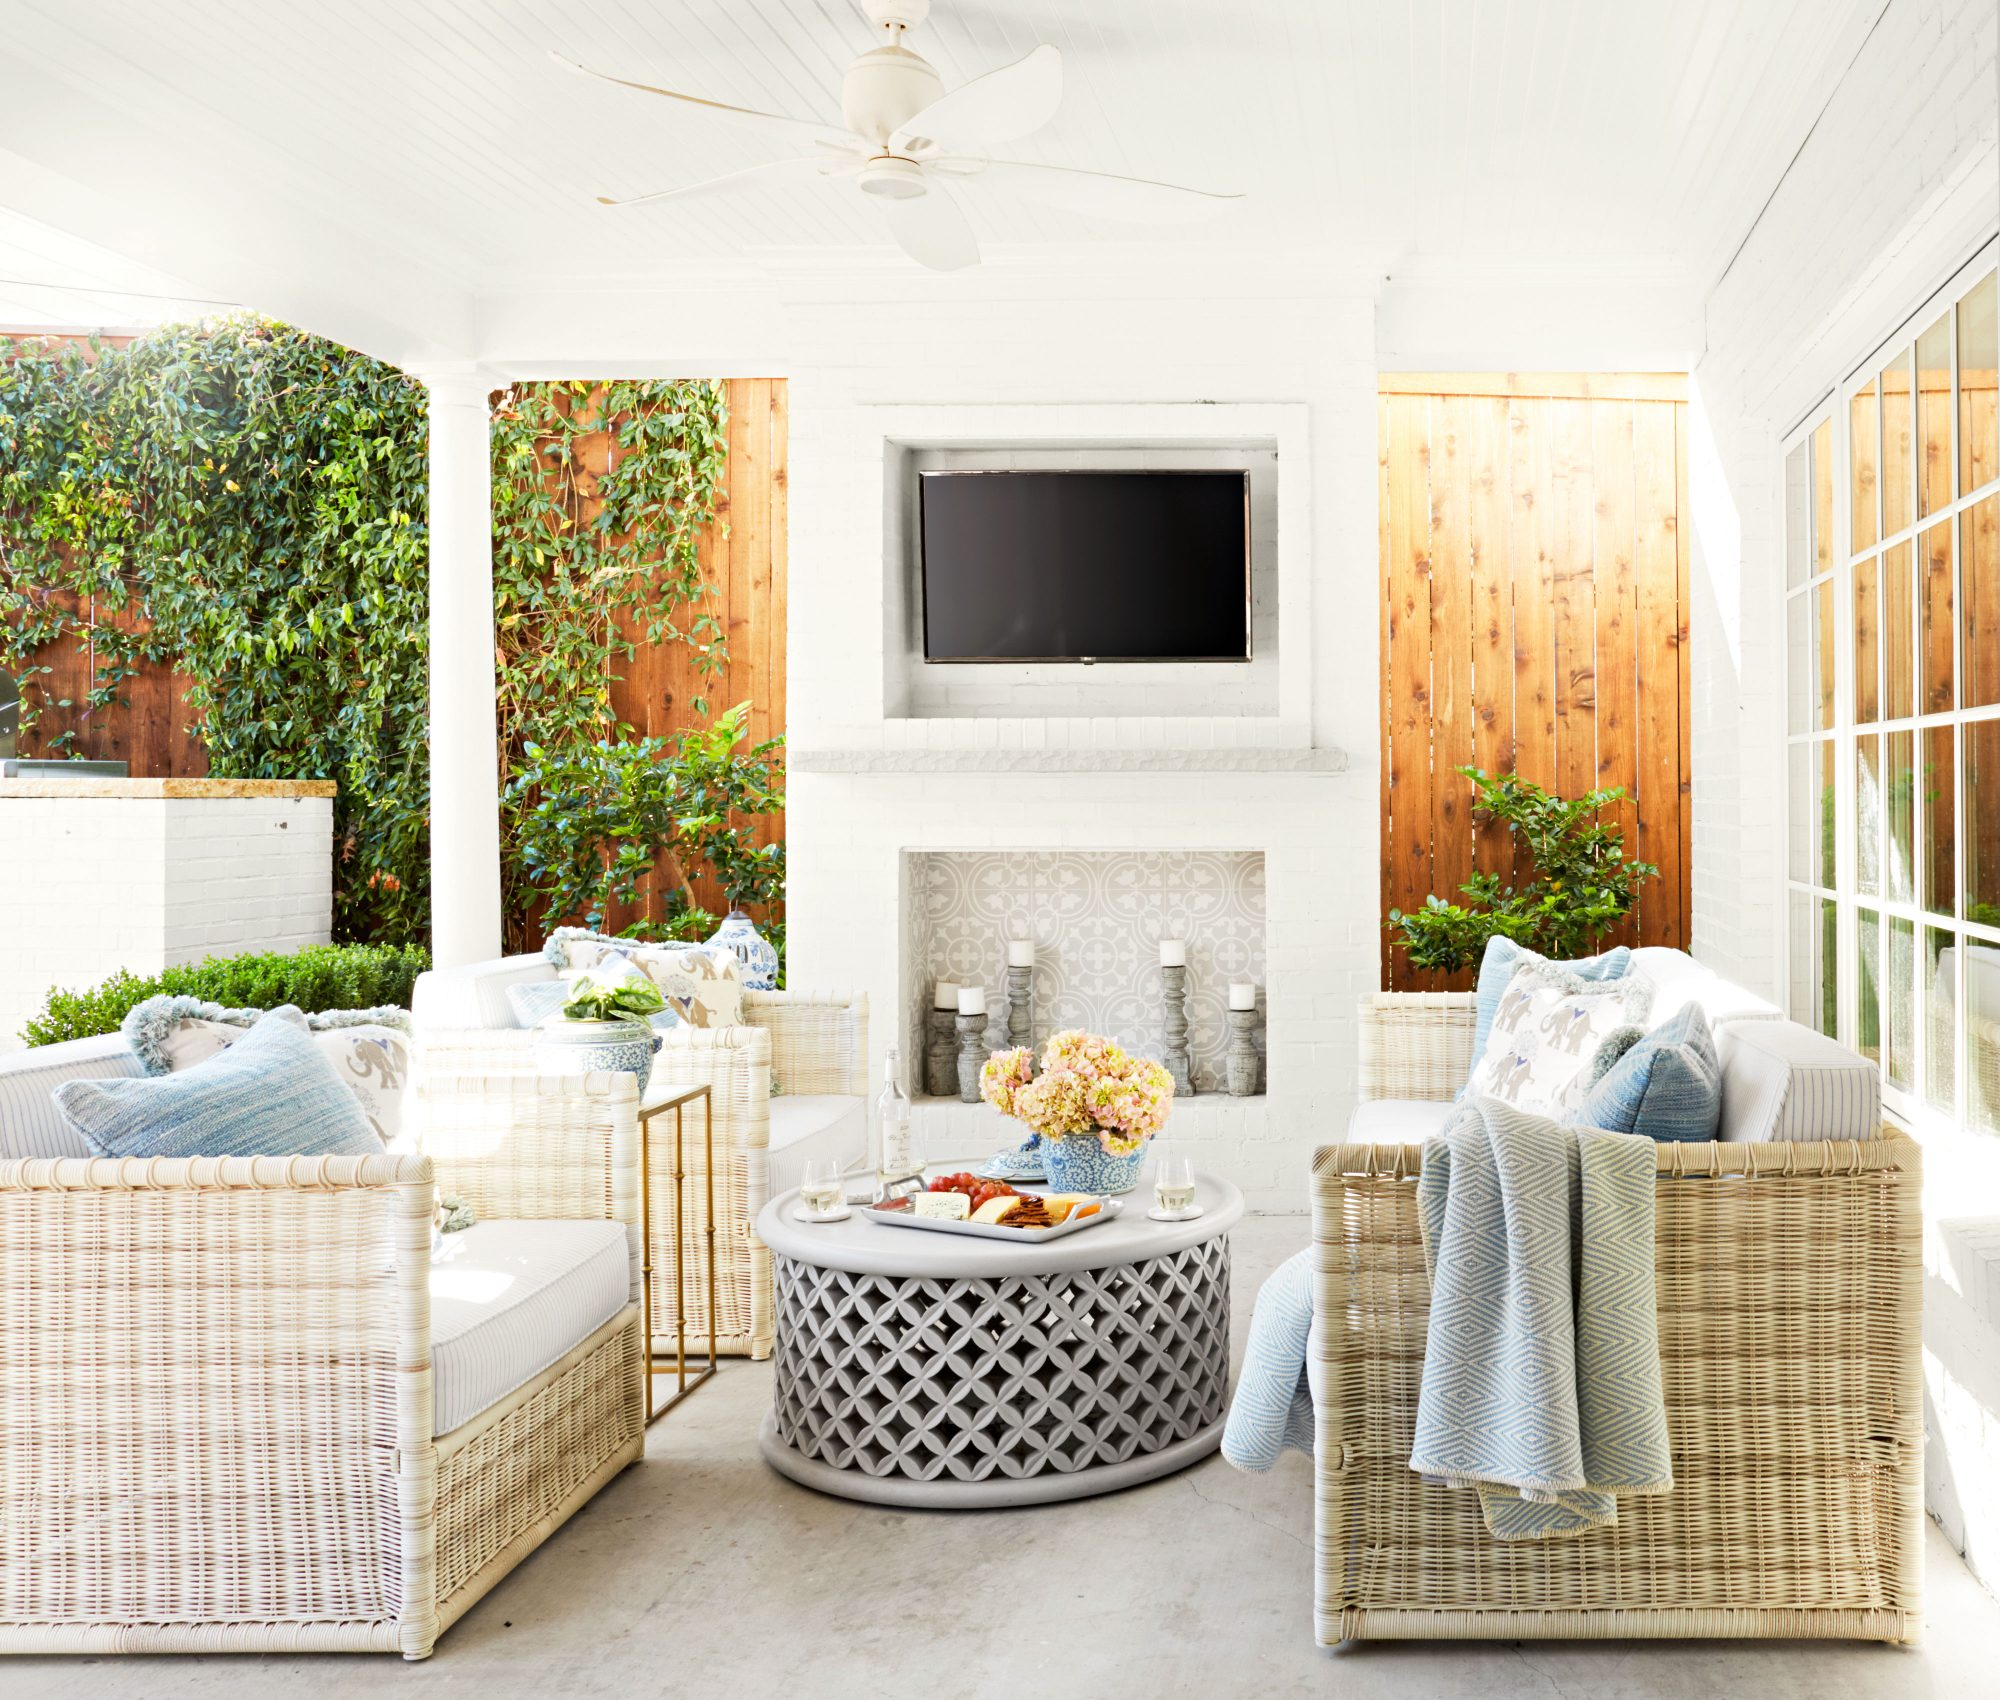 Outdoor patio with seating